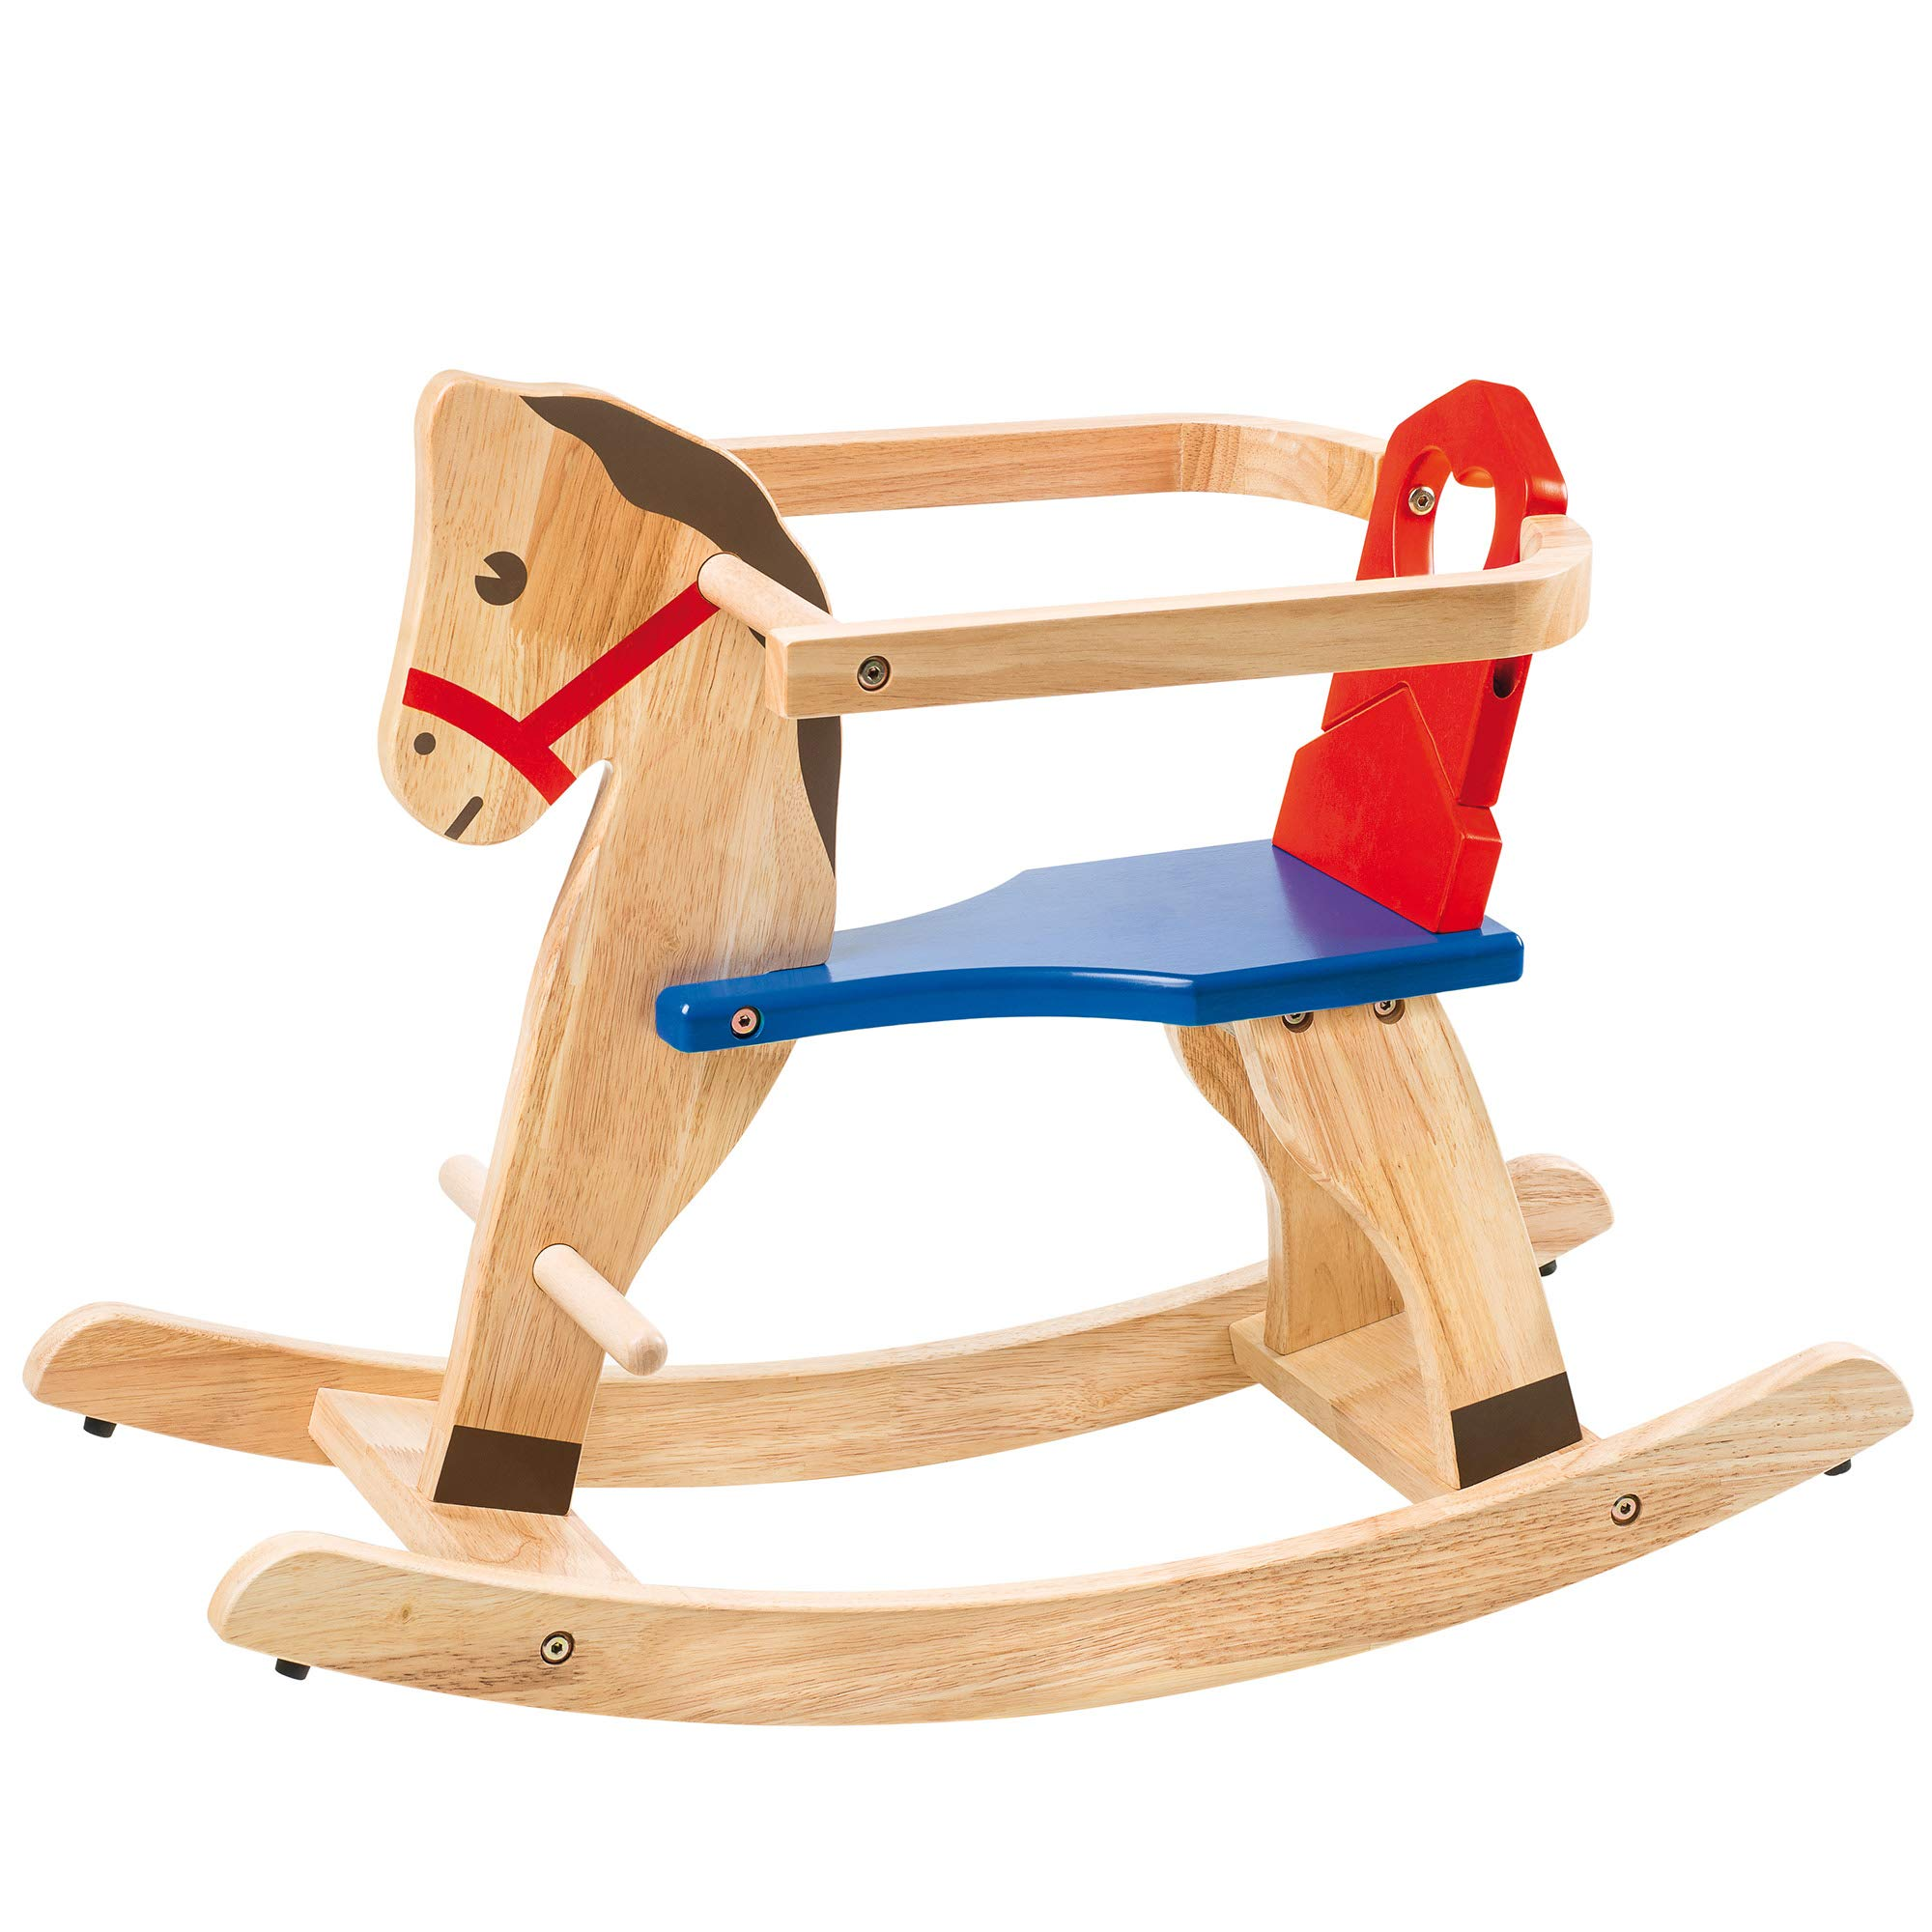 Slow Toys Selegiochi Rocking Horse, Brown, Blue, Red, nv39582